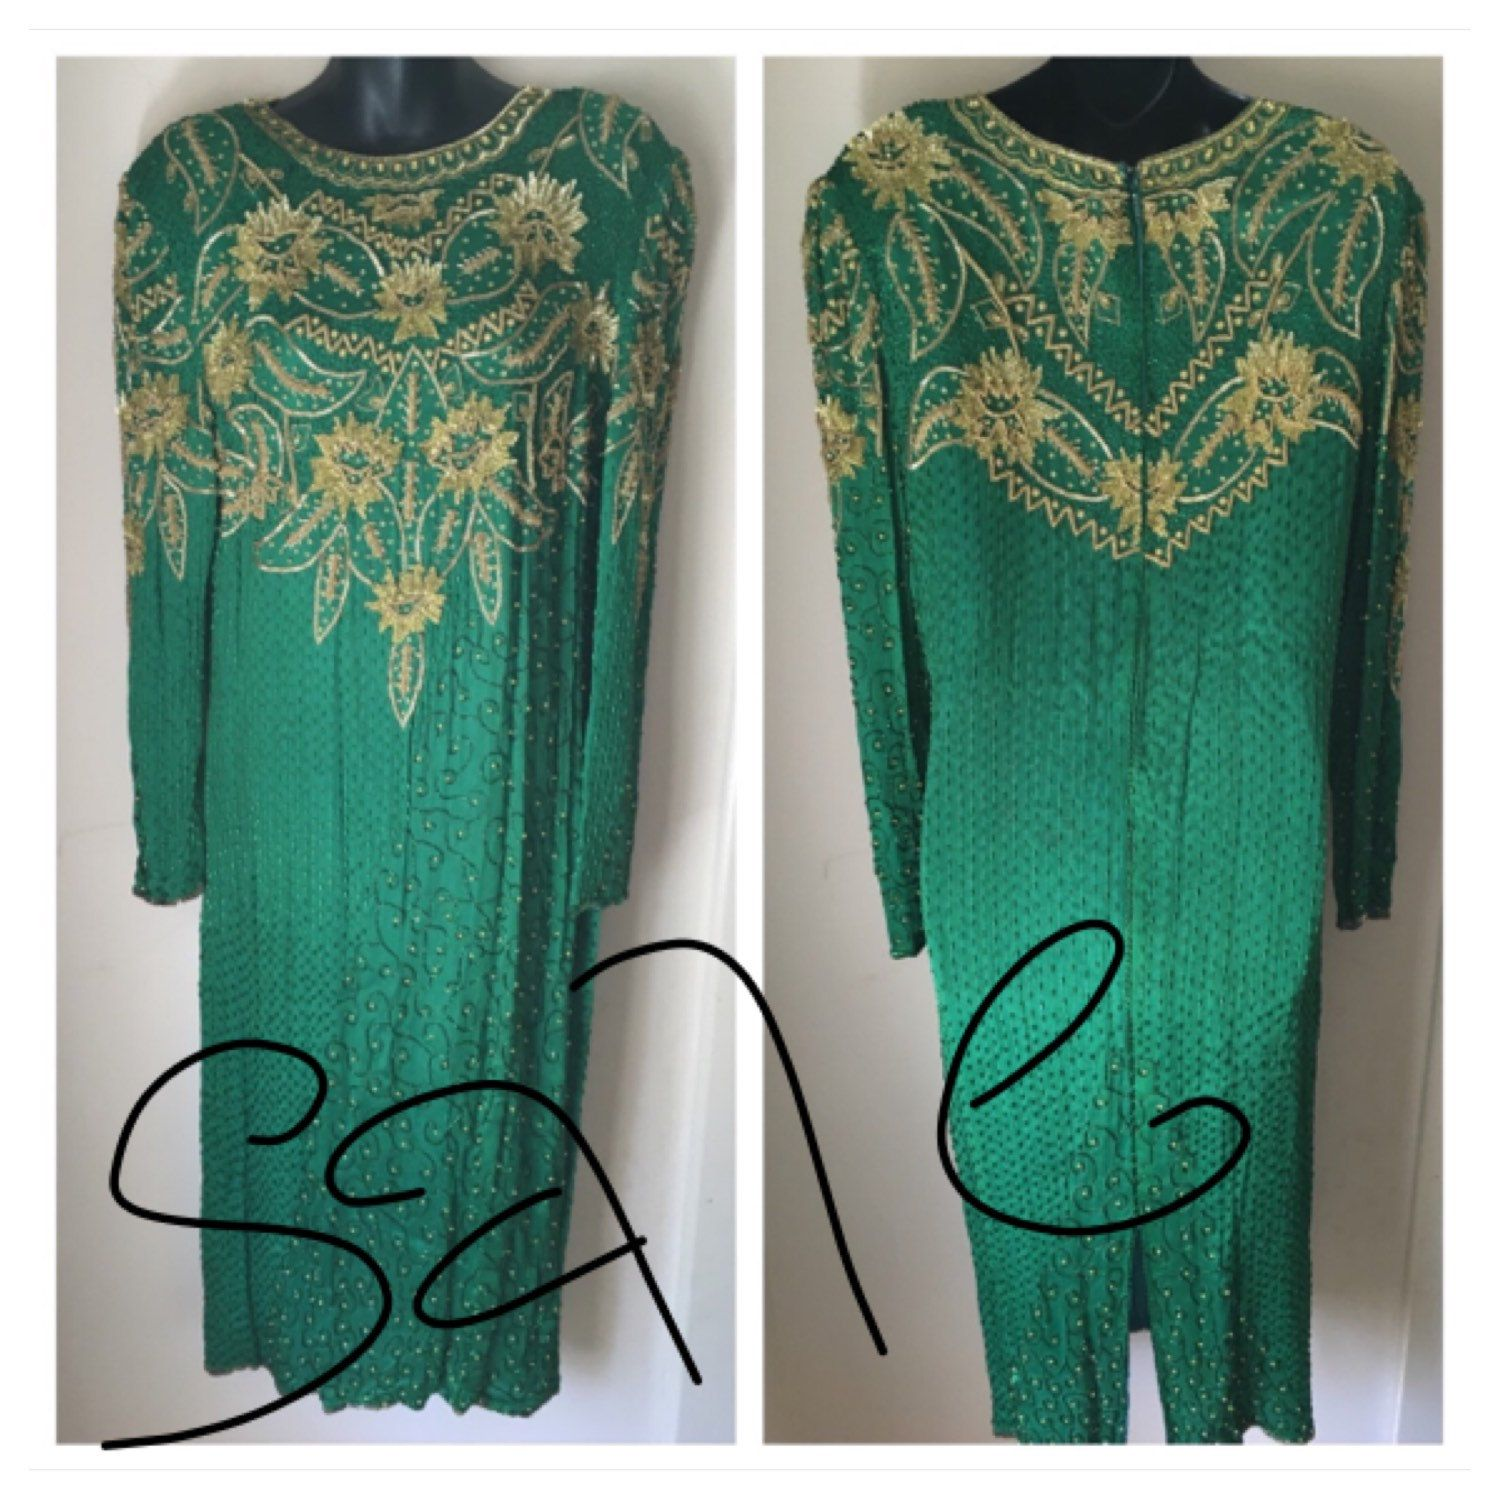 VintageBobbieMaude shared a new photo on | Vintage Clothing ...